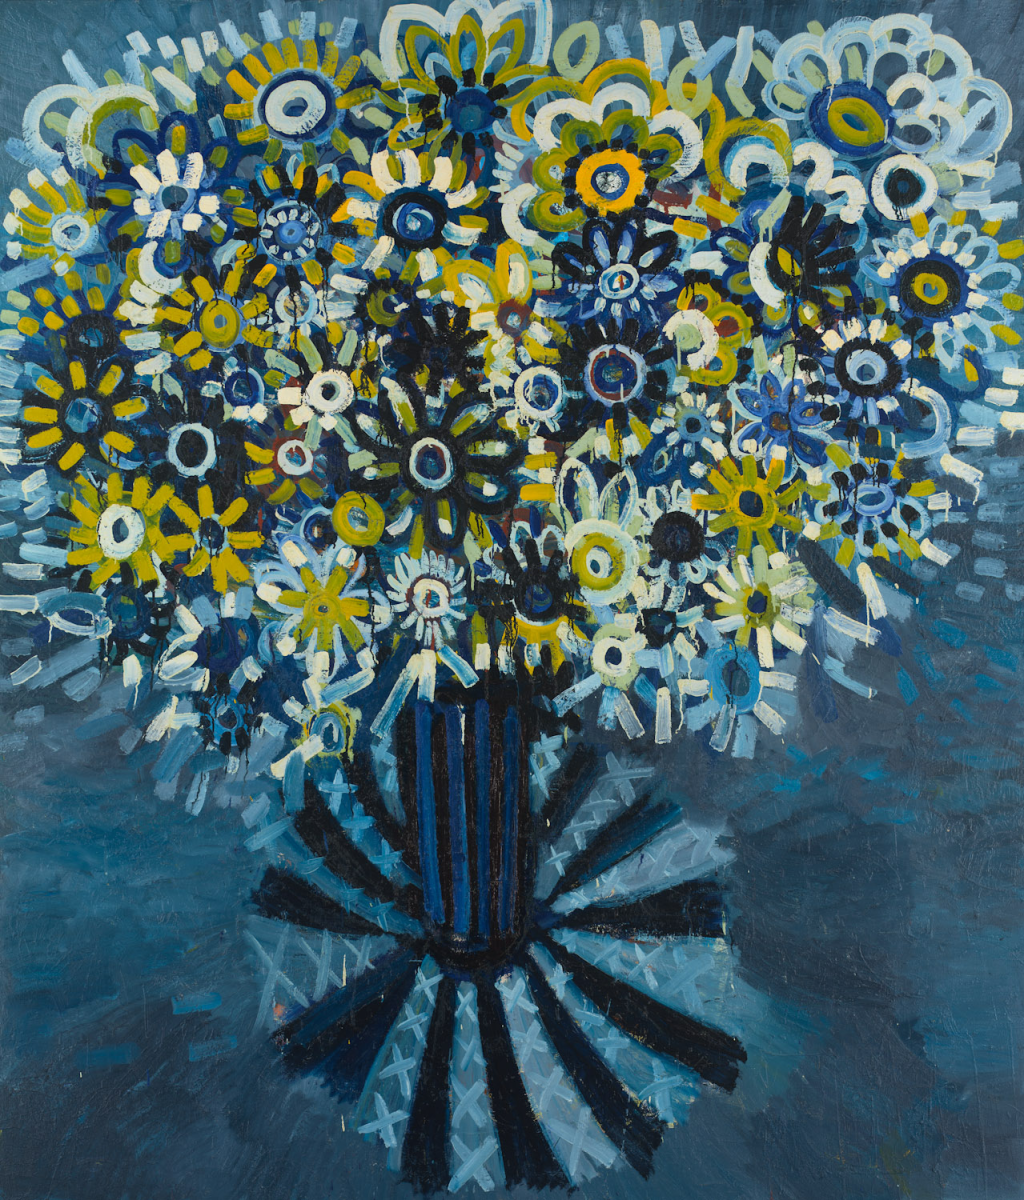 Untitled (Flowers), Gerben Mulder